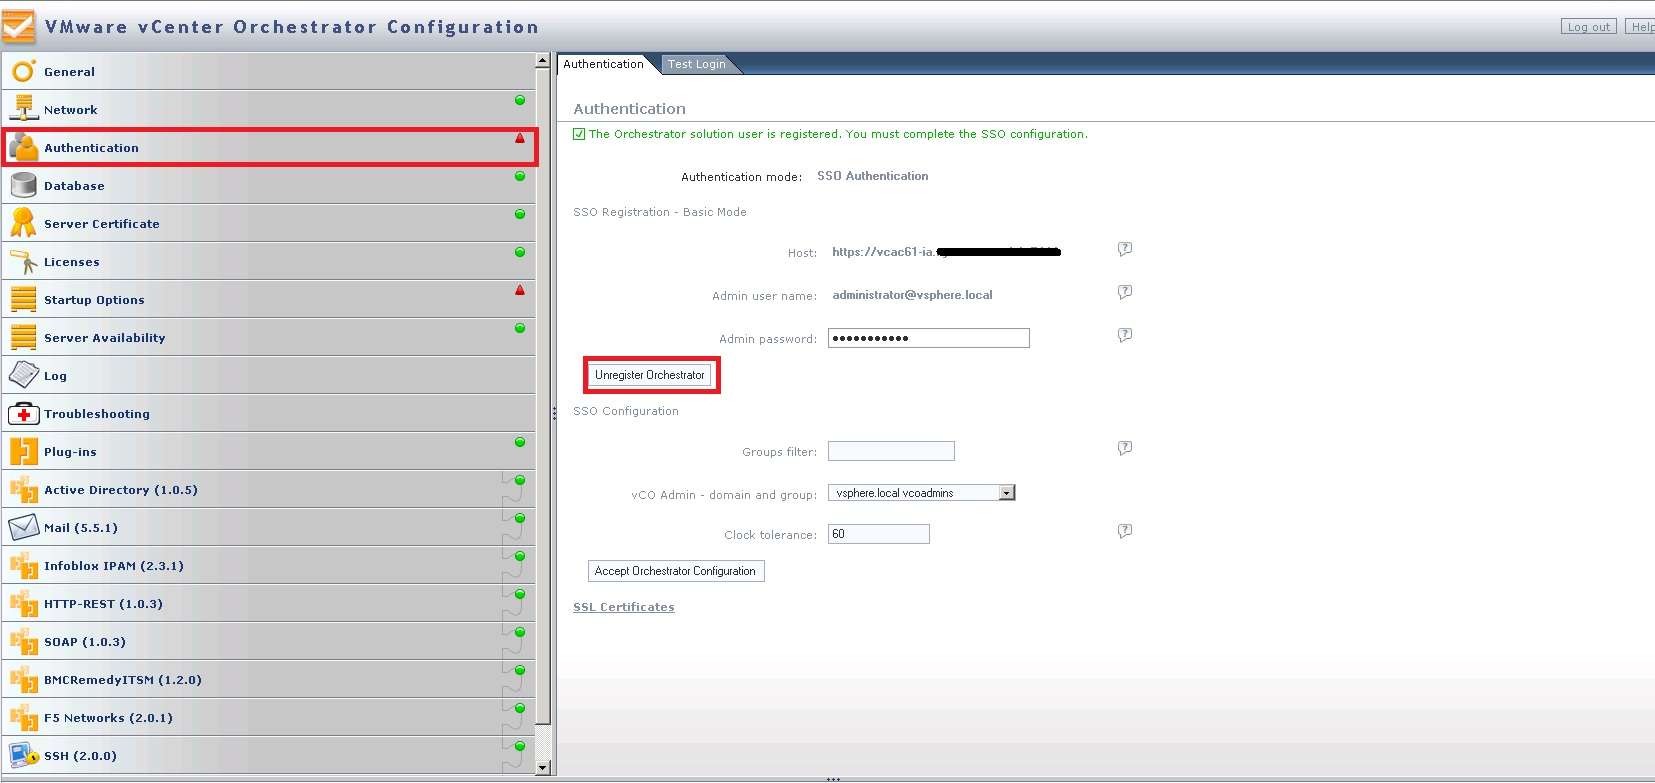 How to configure vRO (vCO) AD permissions on workflows